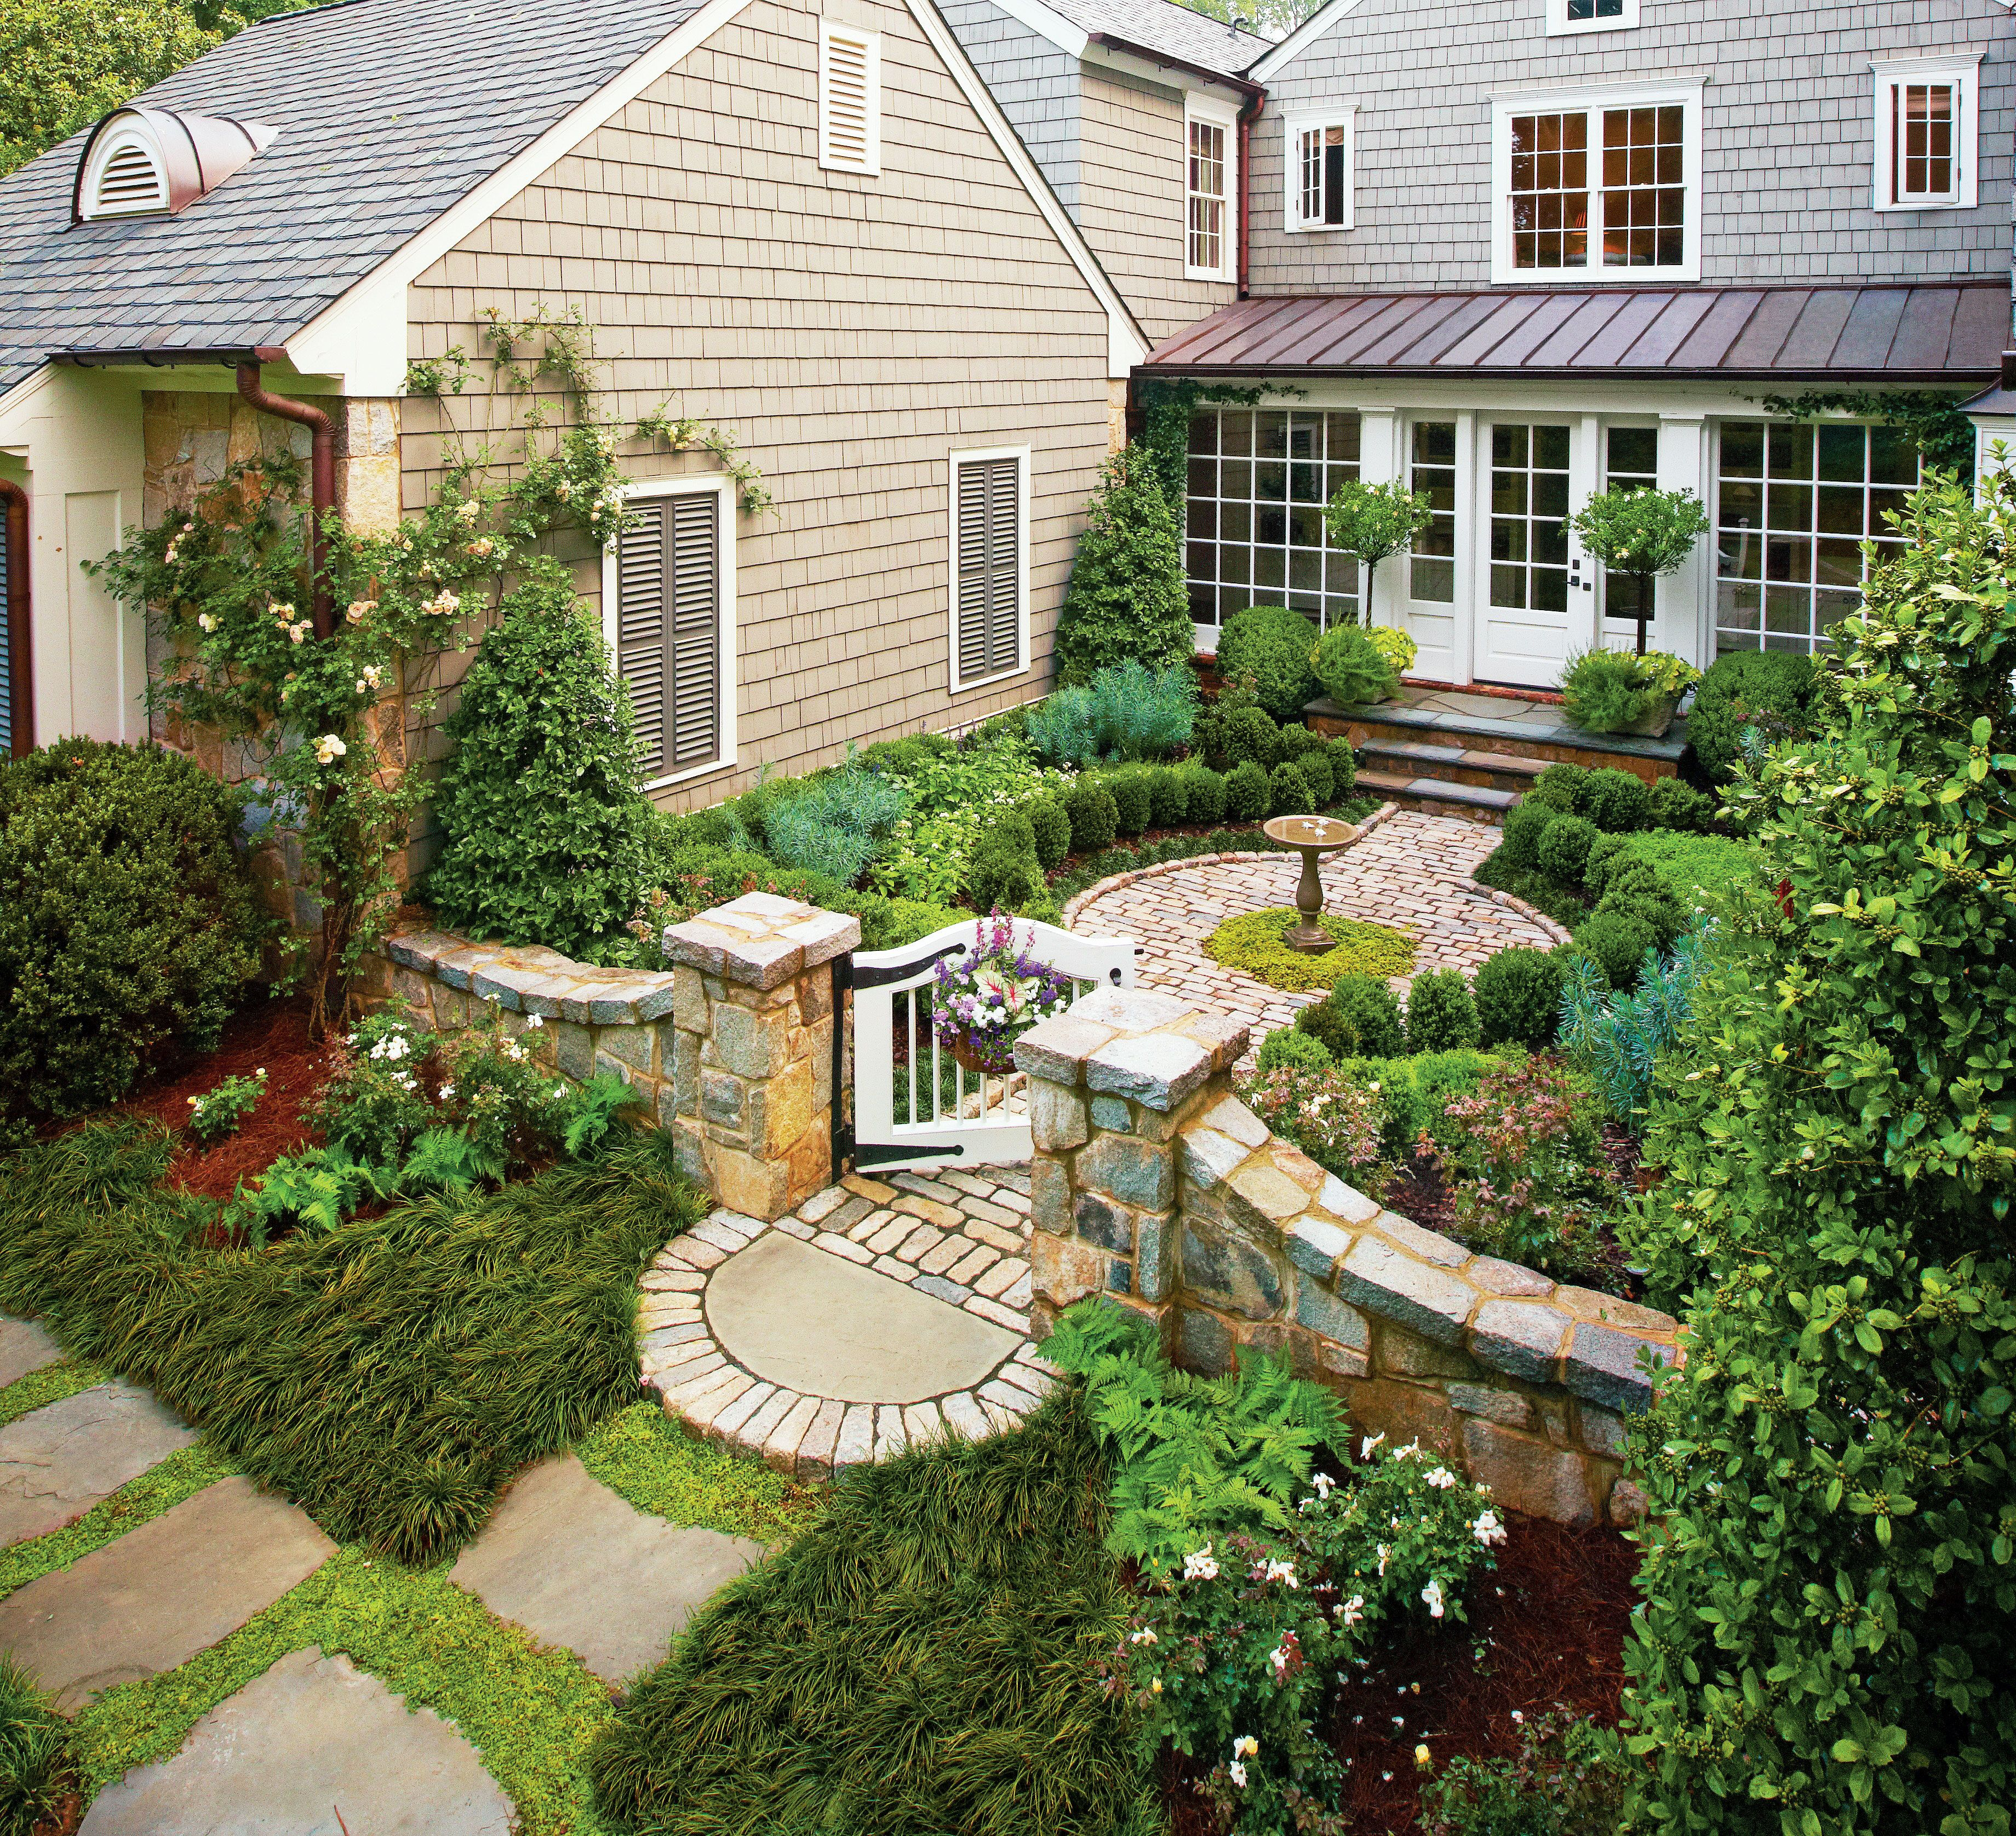 New Home Designs Latest Beautiful Home Gardens Designs: ~ Living A Beautiful Life